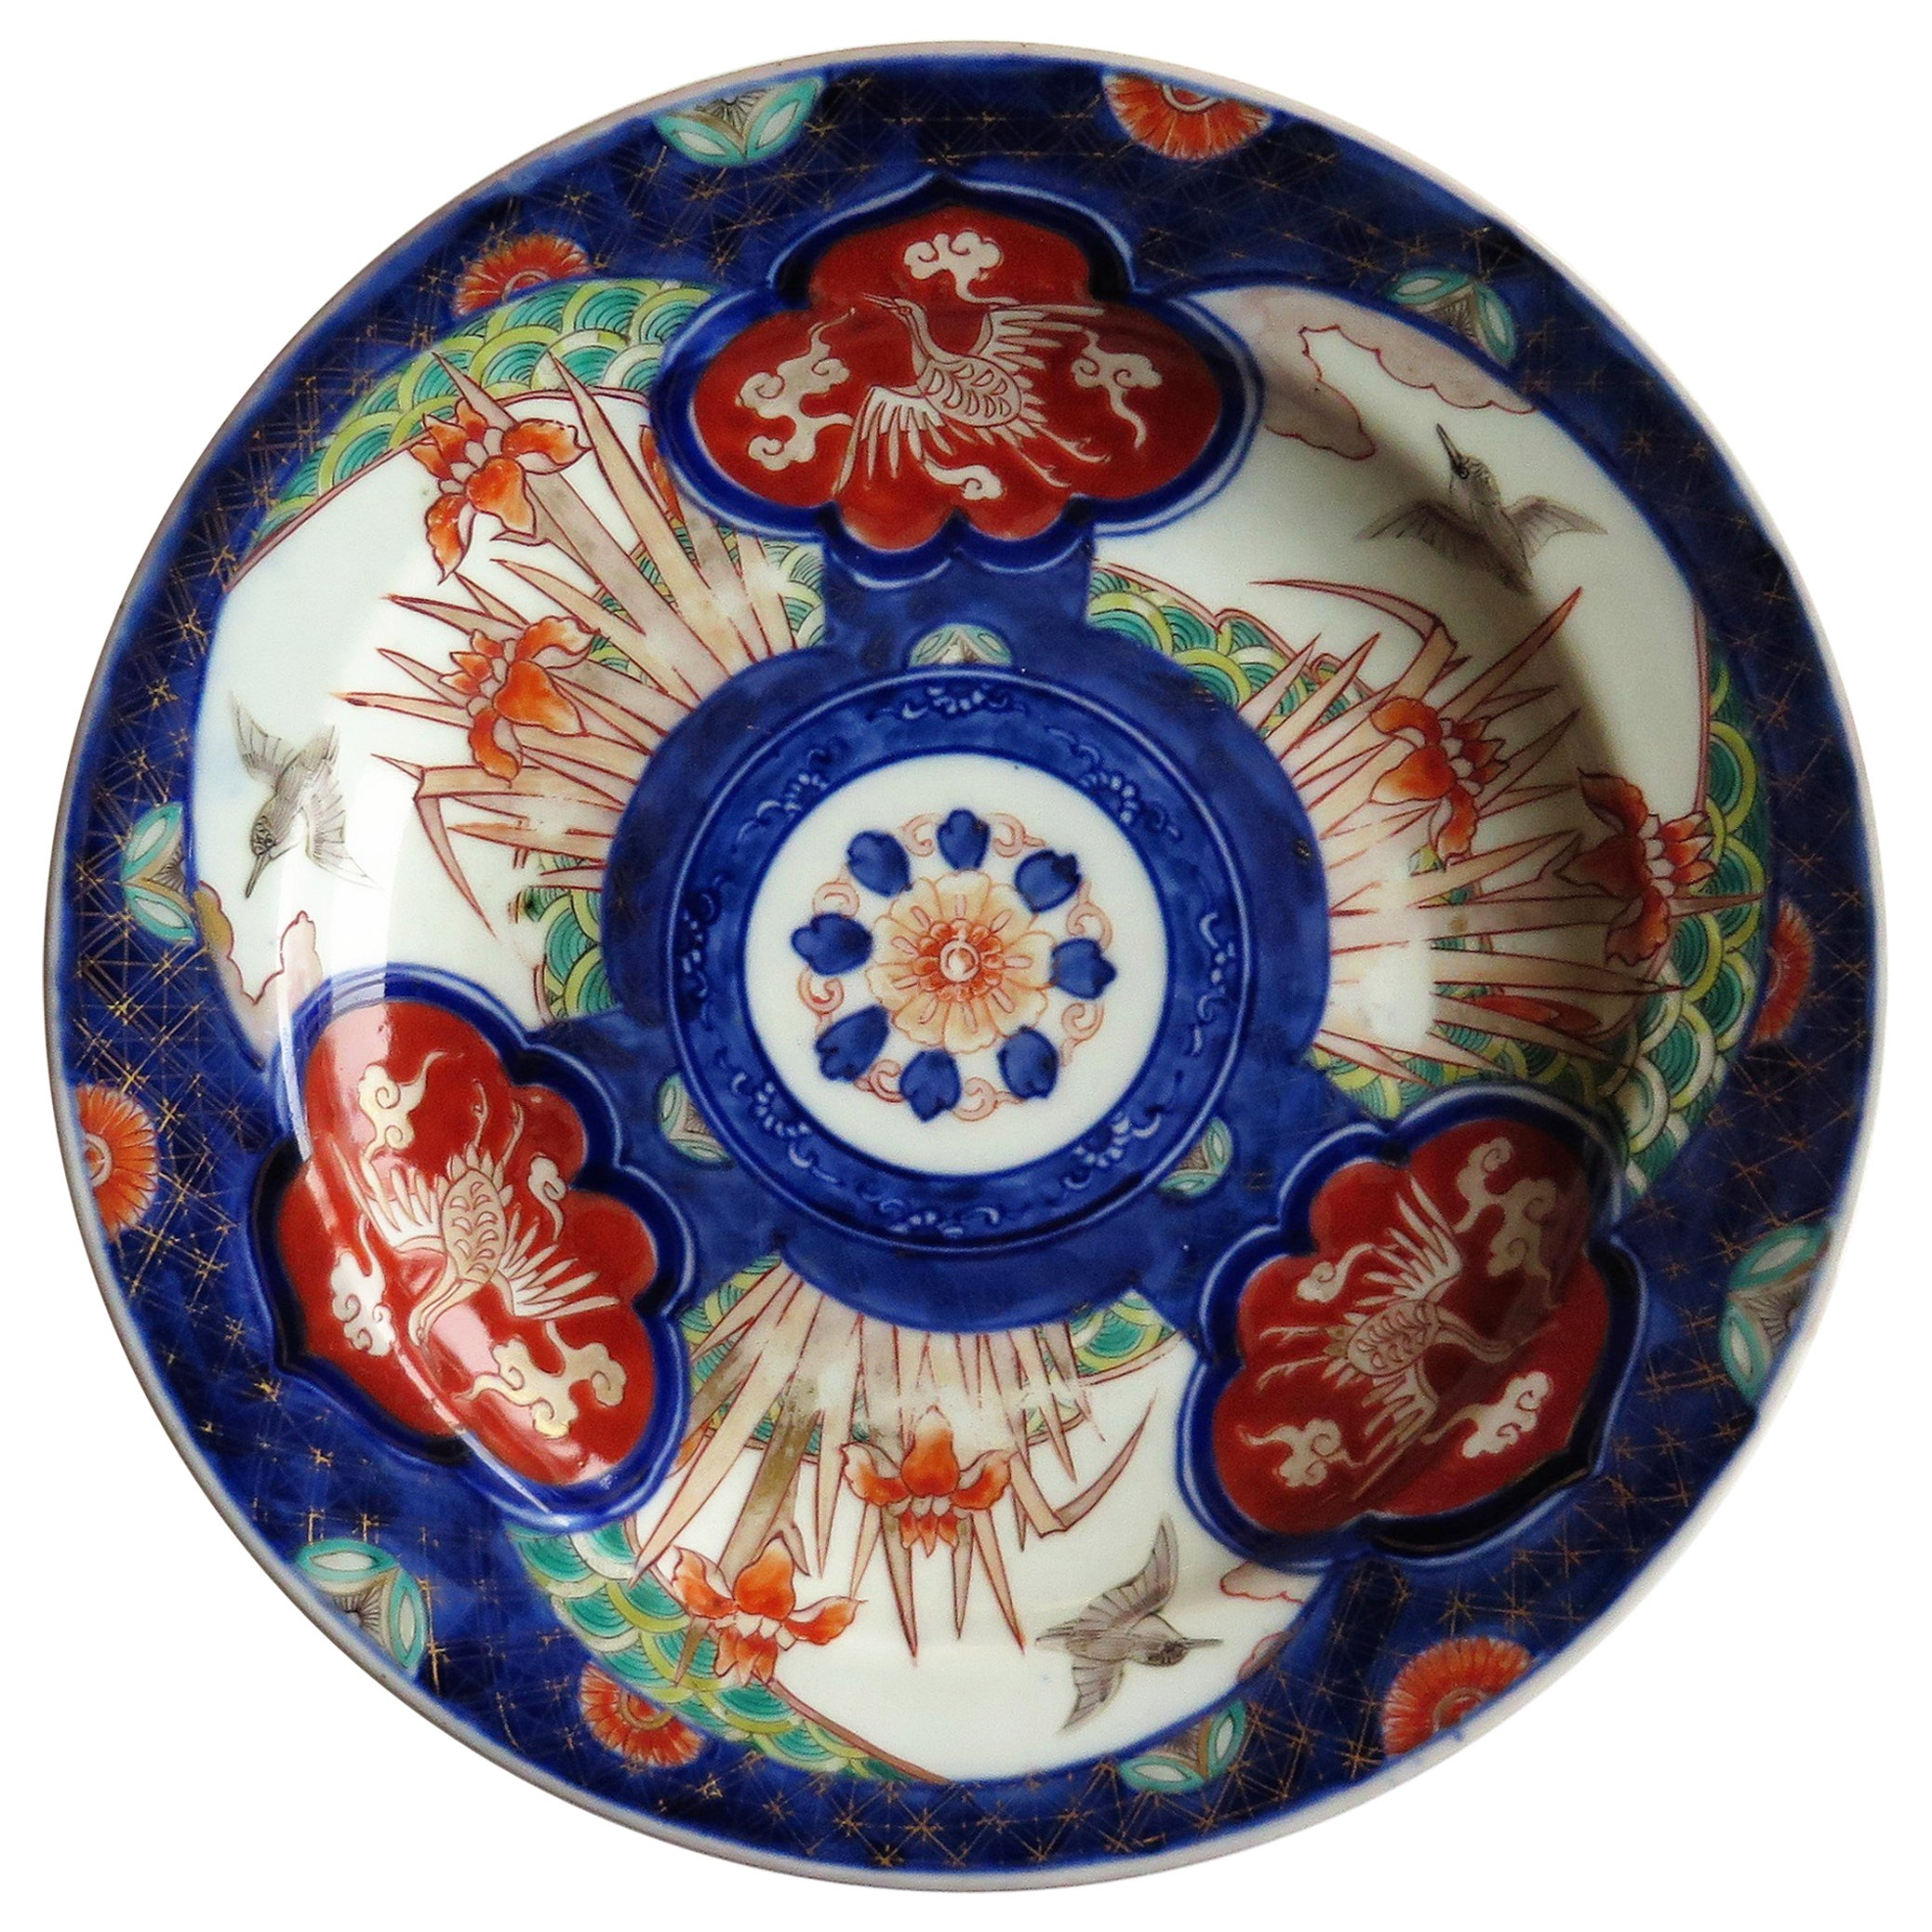 Japanese Porcelain Deep Plate or Bowl Hand Painted, Meiji Period circa 1870